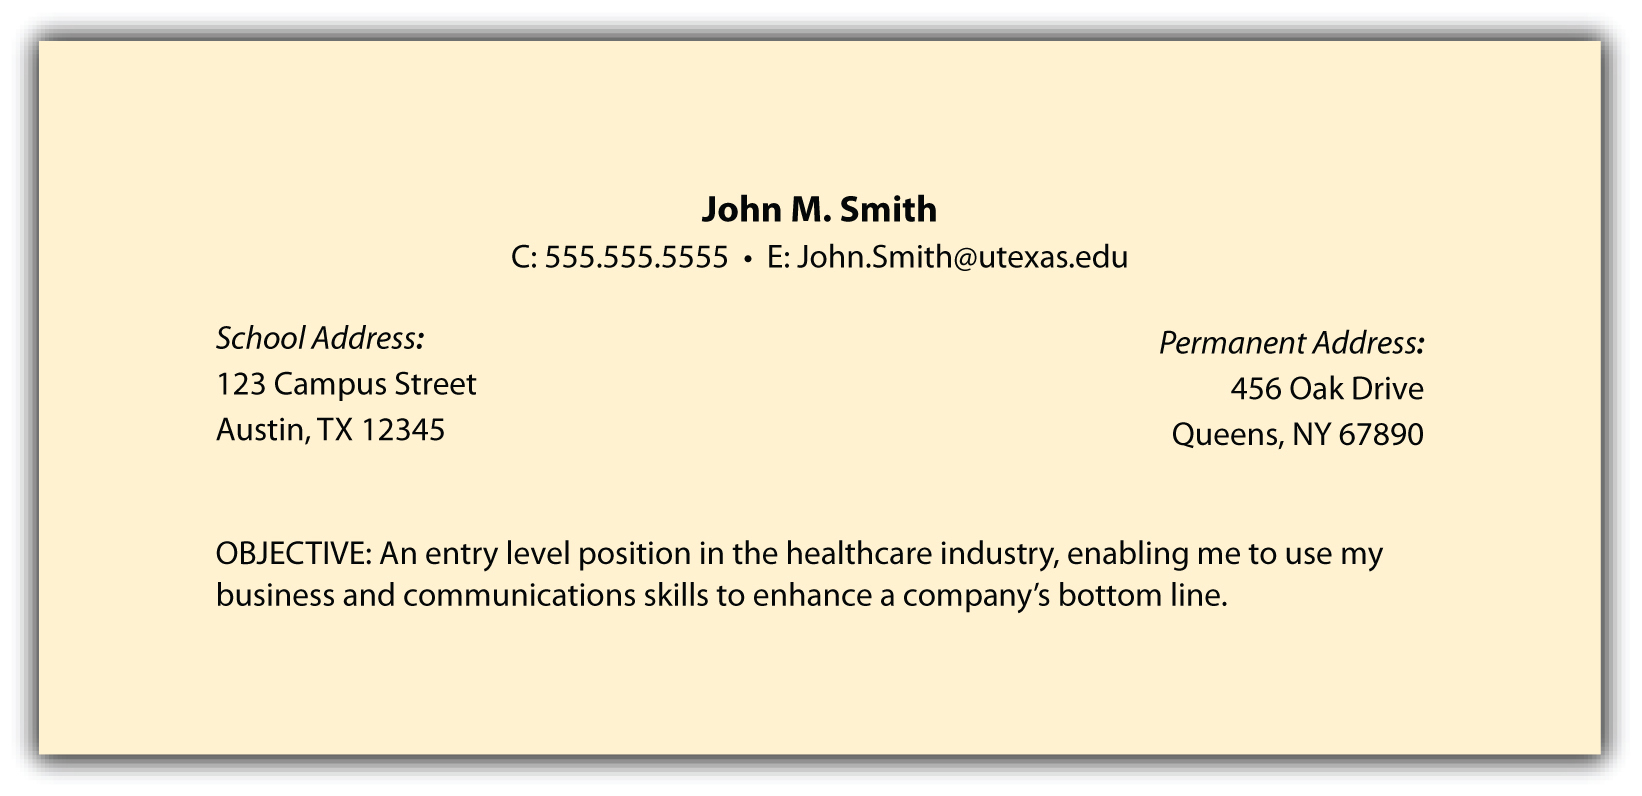 Entry Level Resume Summary Samples